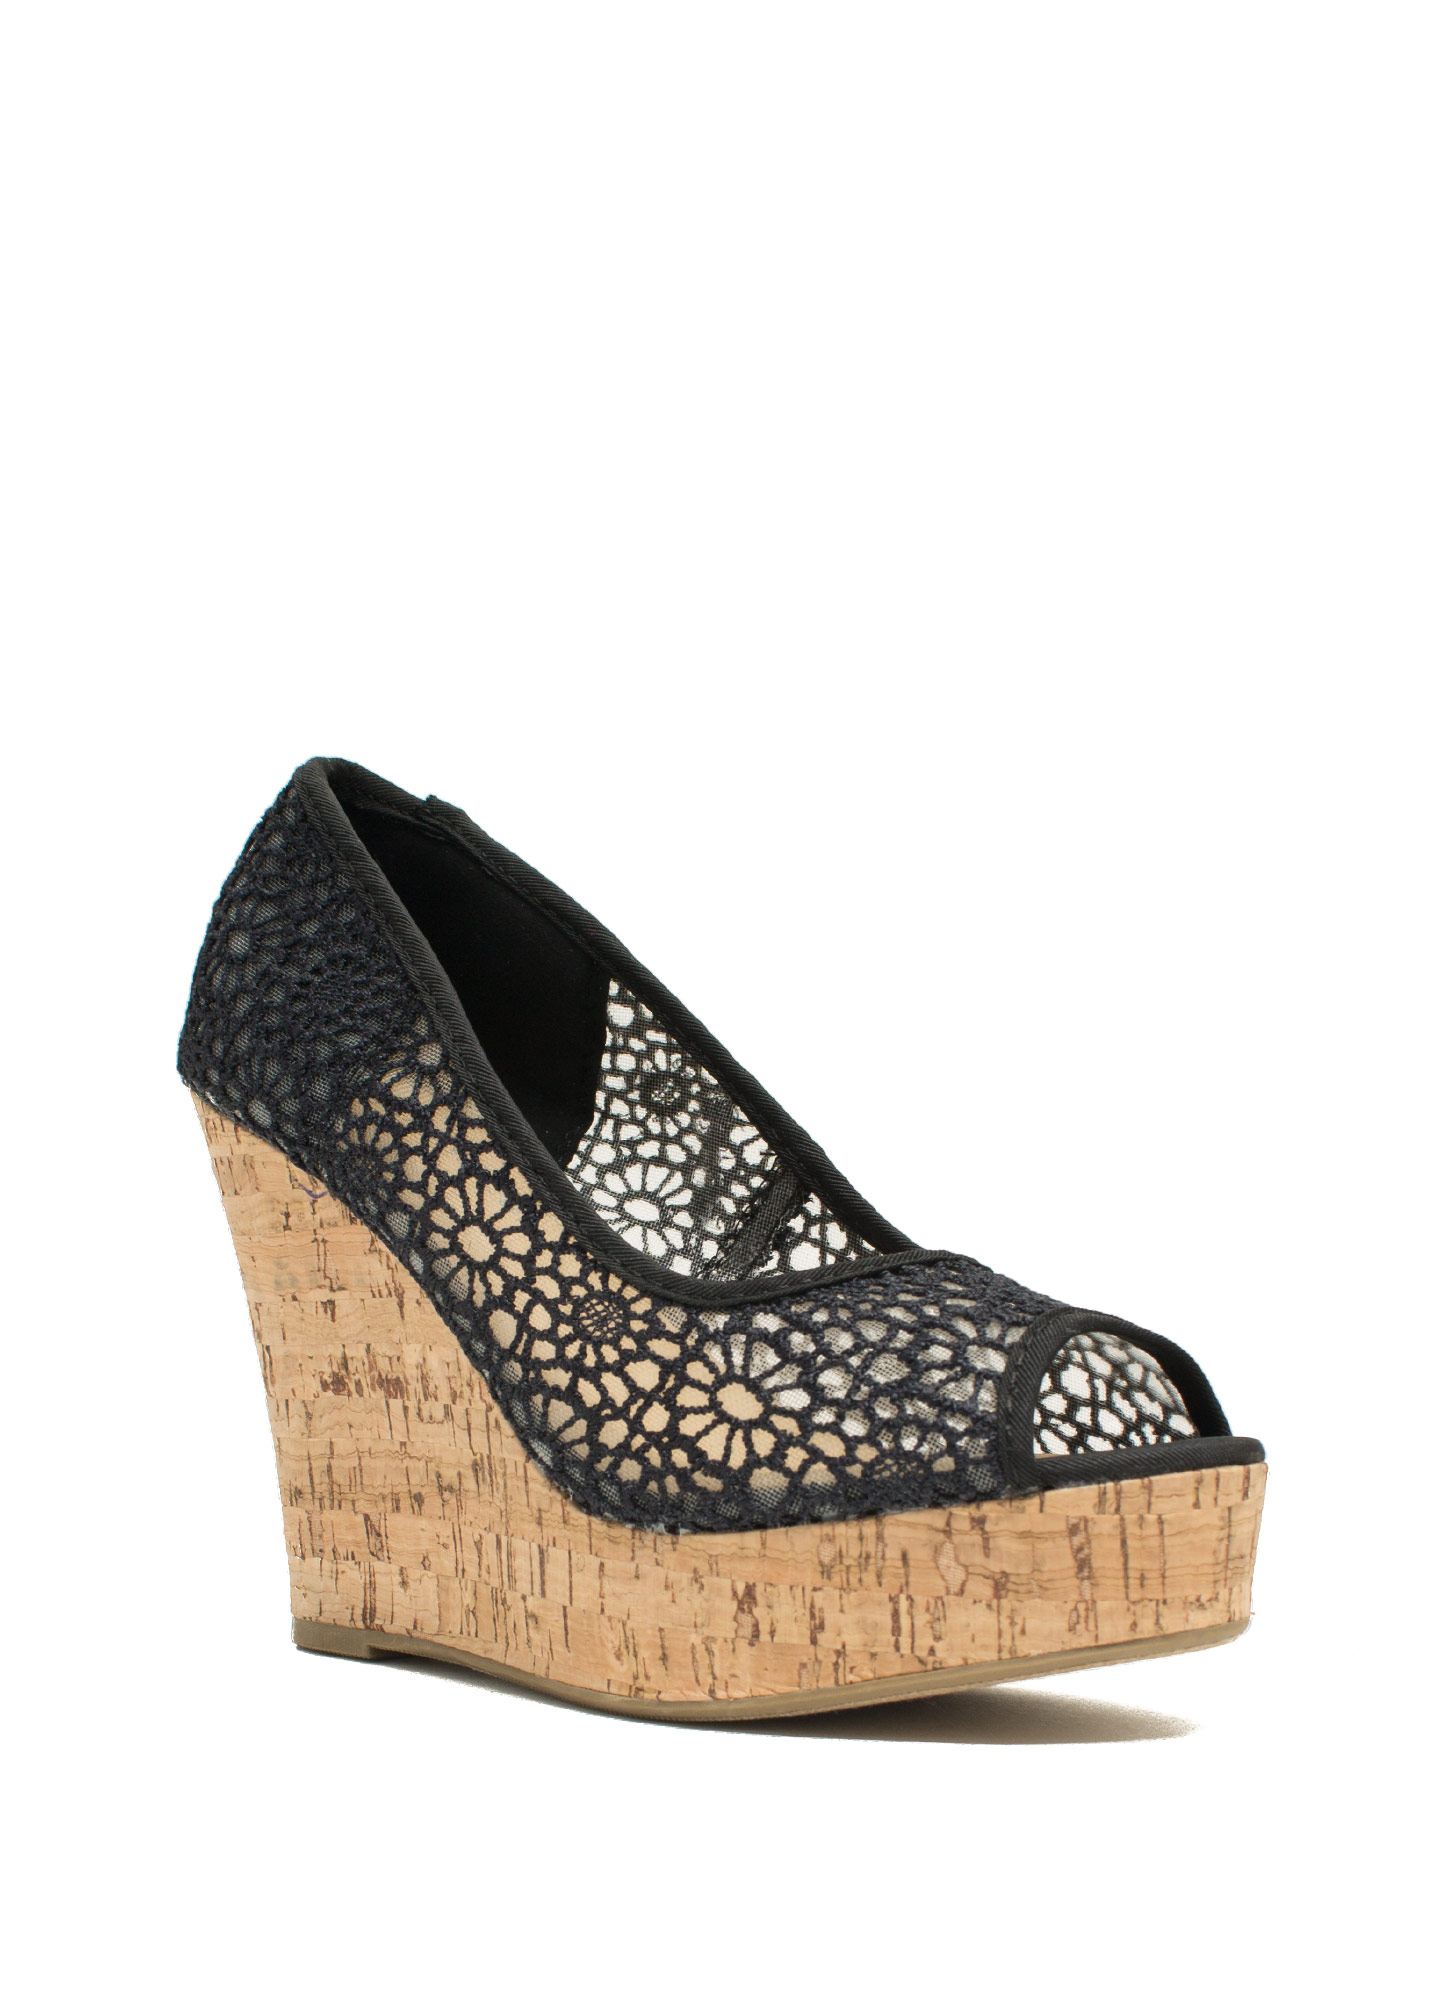 Floral Fiend Embroidered Wedges BLACK (Final Sale)